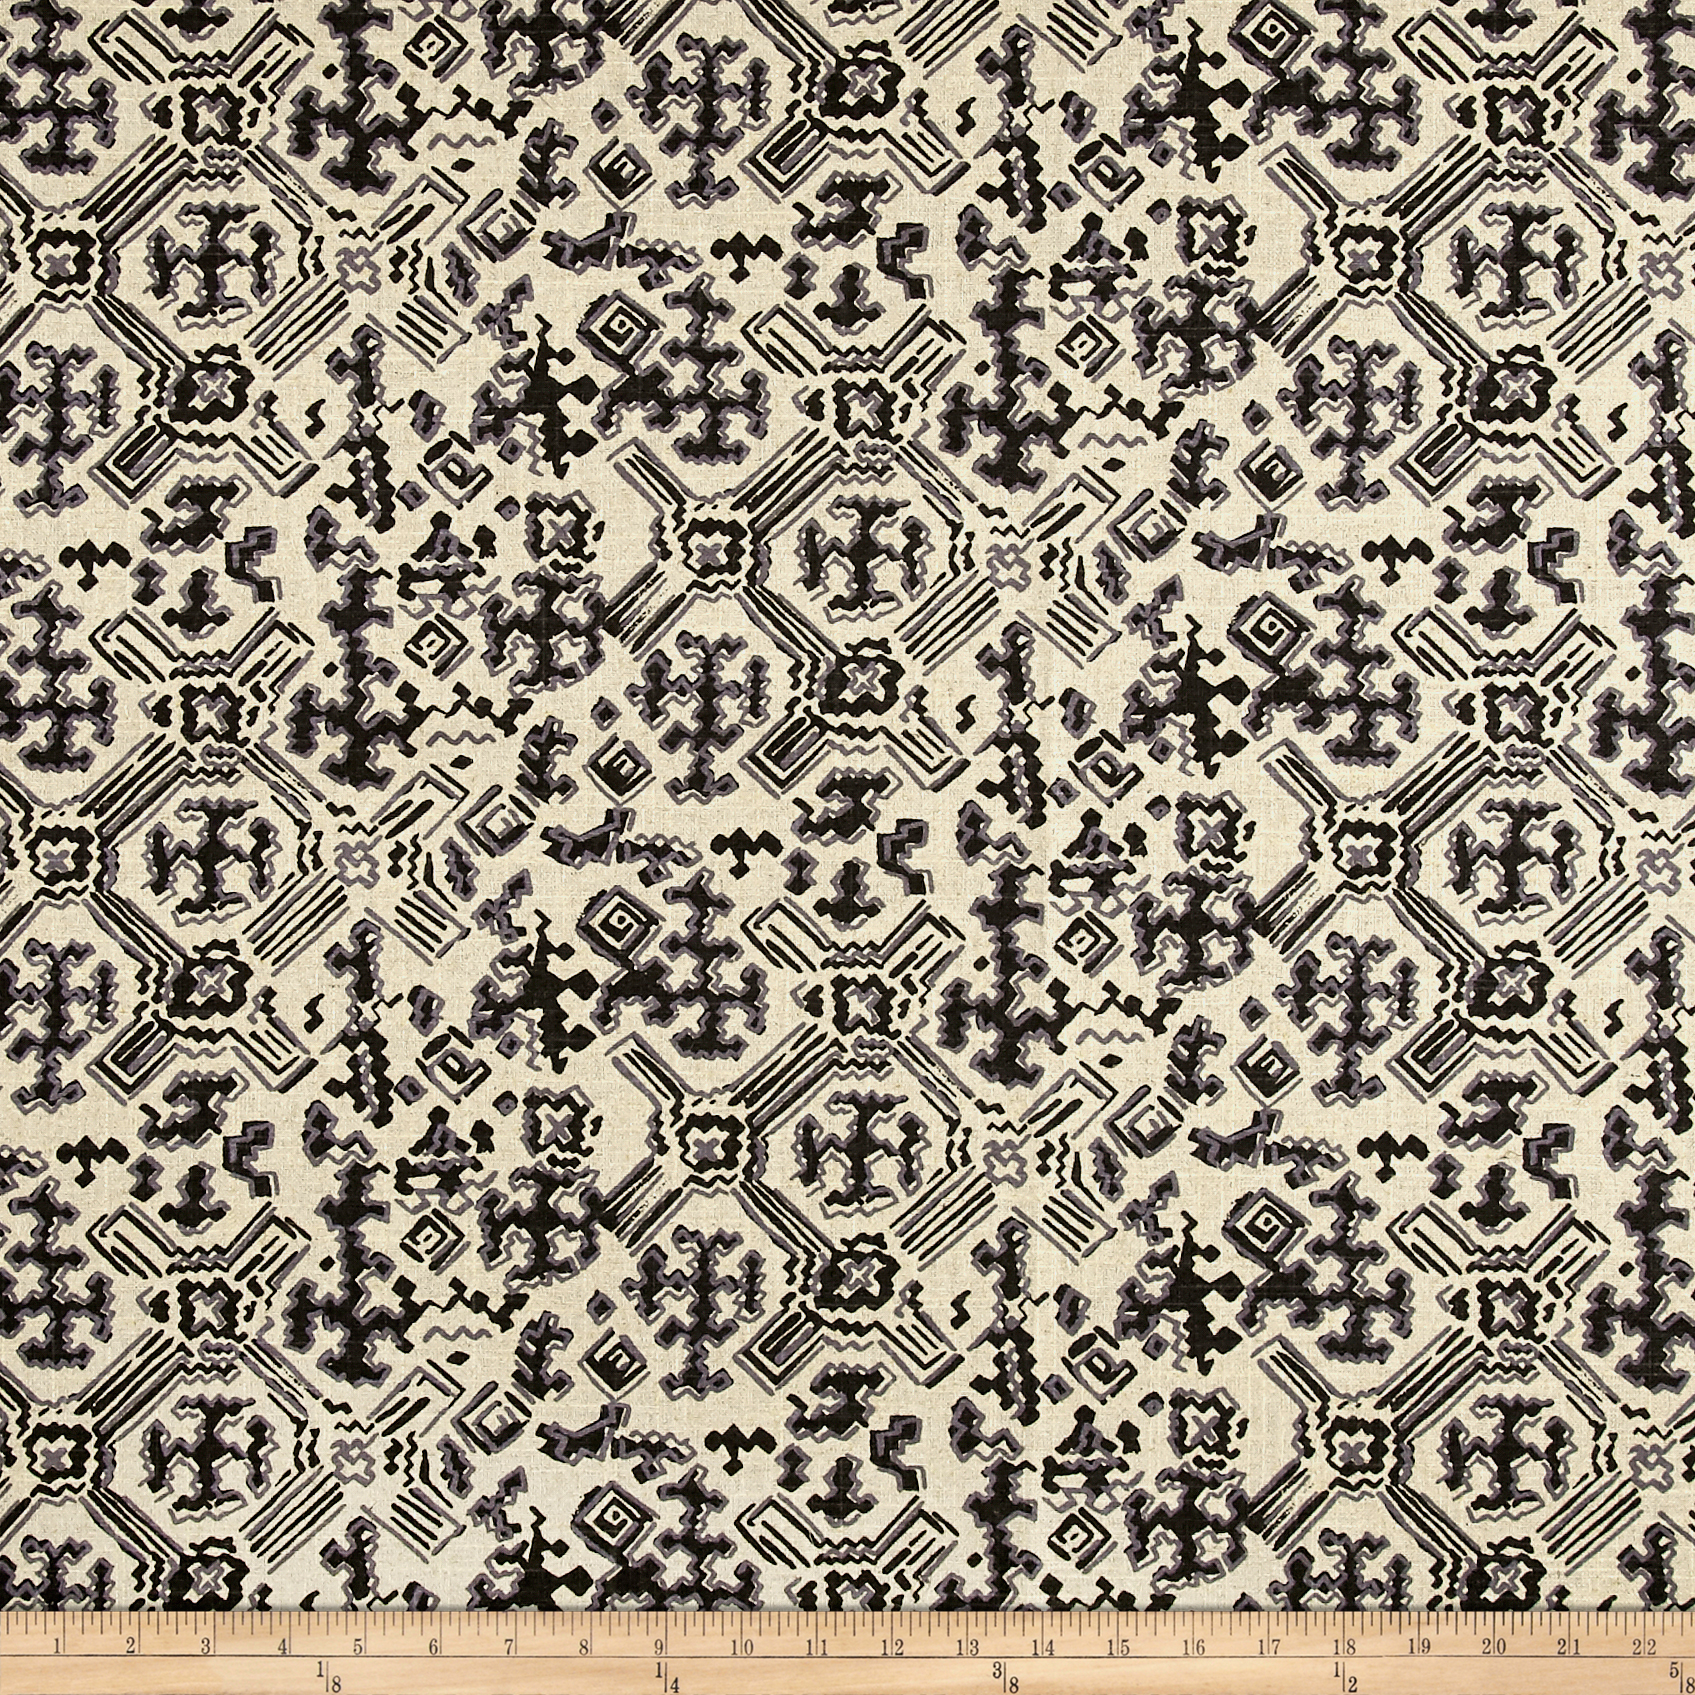 Lacefield Nomad Granite Pearlized Fabric by Lacefield in USA